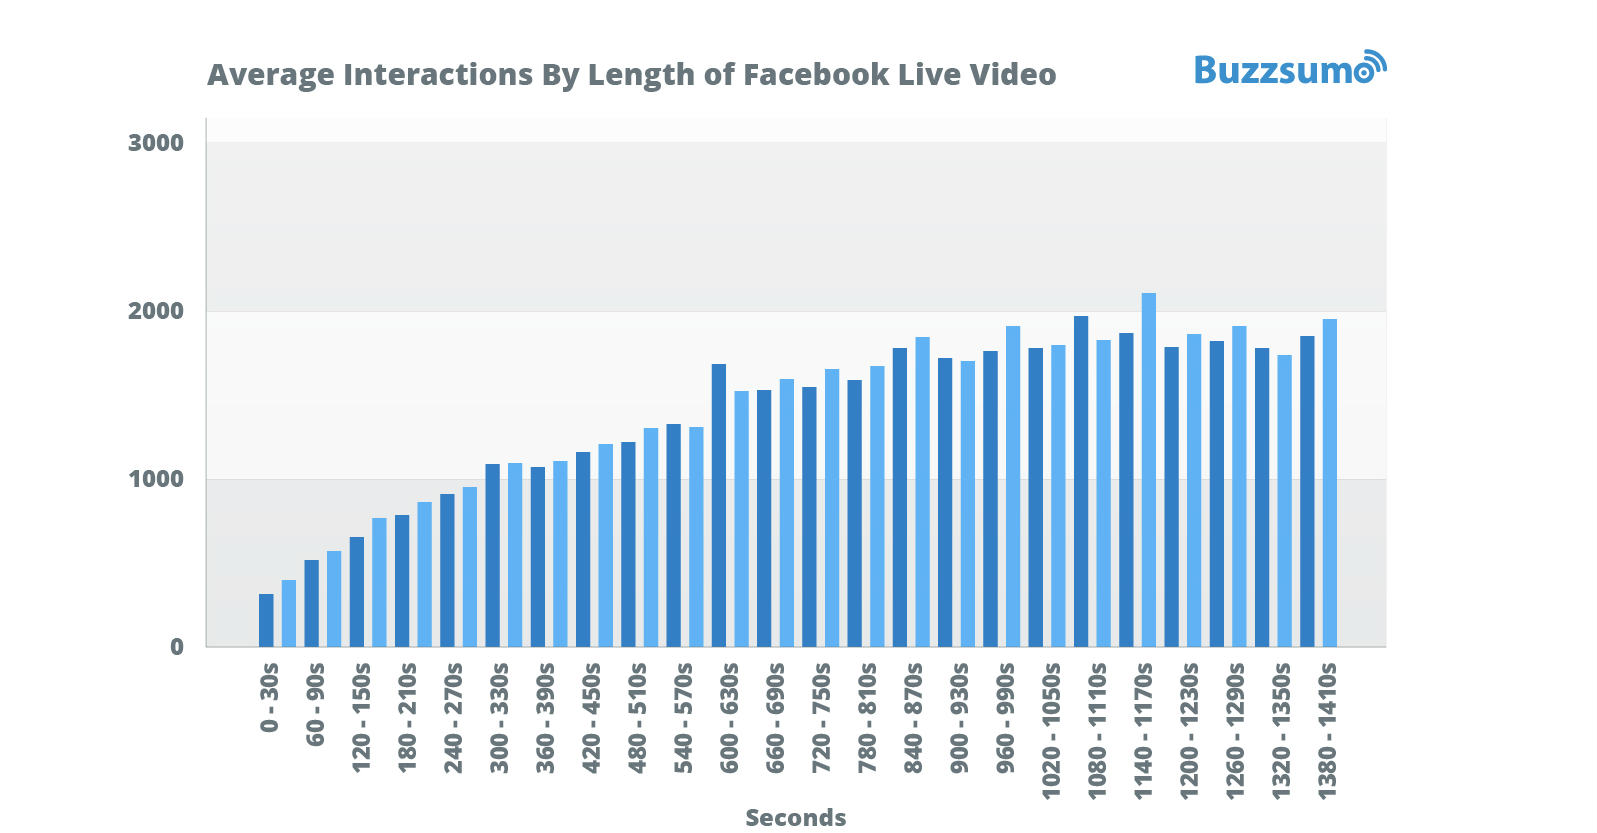 Best length for Facebook live video